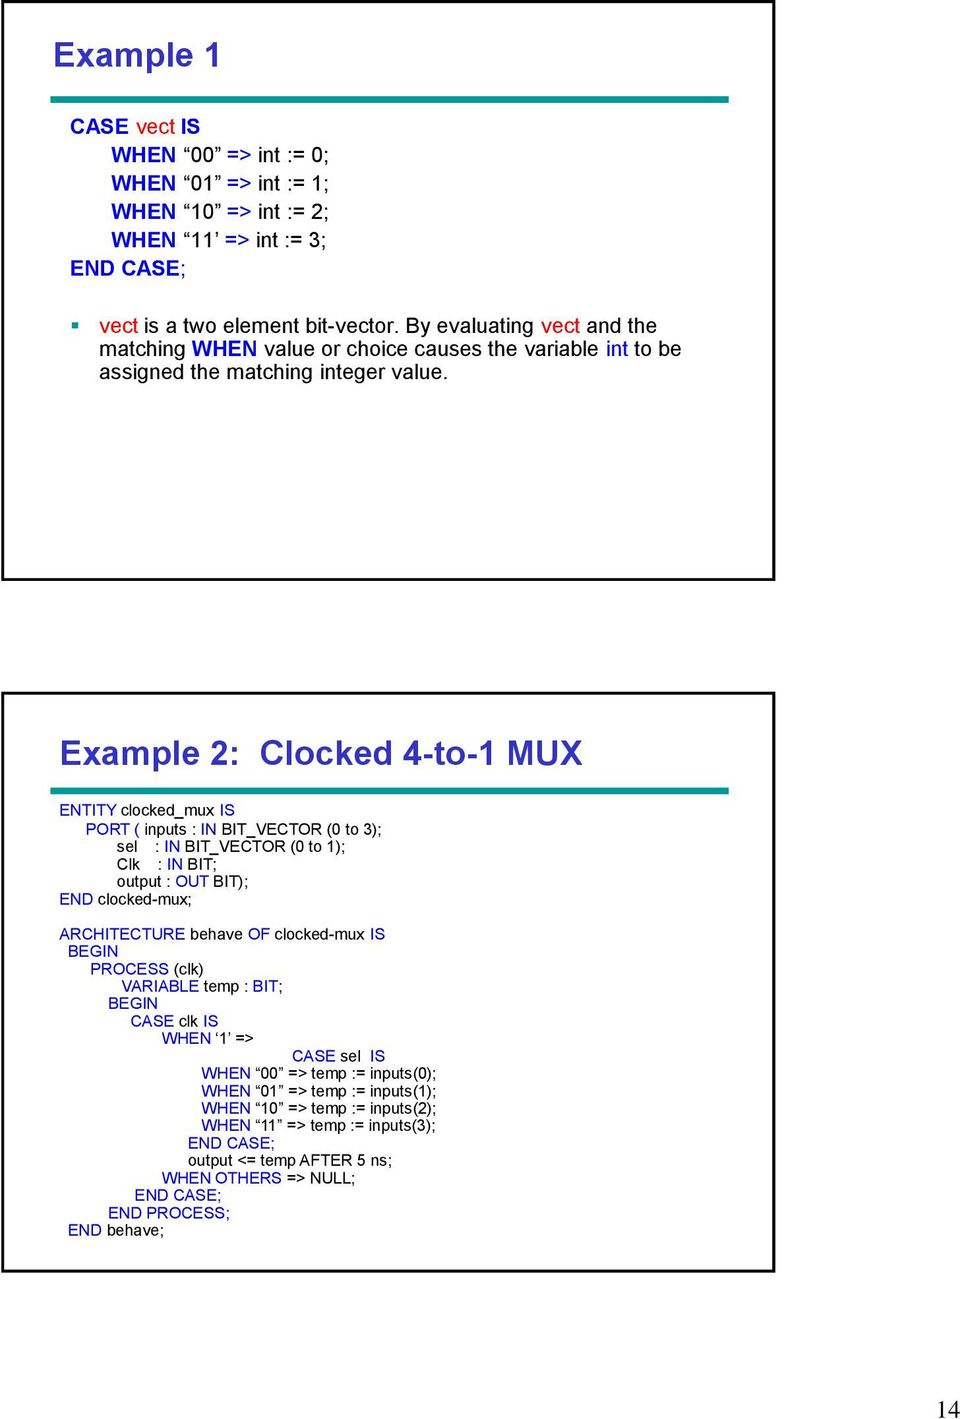 Example 2: Clocked 4-to-1 MUX ENTITY clocked_mux IS PORT ( inputs : IN BIT_VECTOR (0 to 3); sel : IN BIT_VECTOR (0 to 1); Clk : IN BIT; output : OUT BIT); END clocked-mux; ARCHITECTURE behave